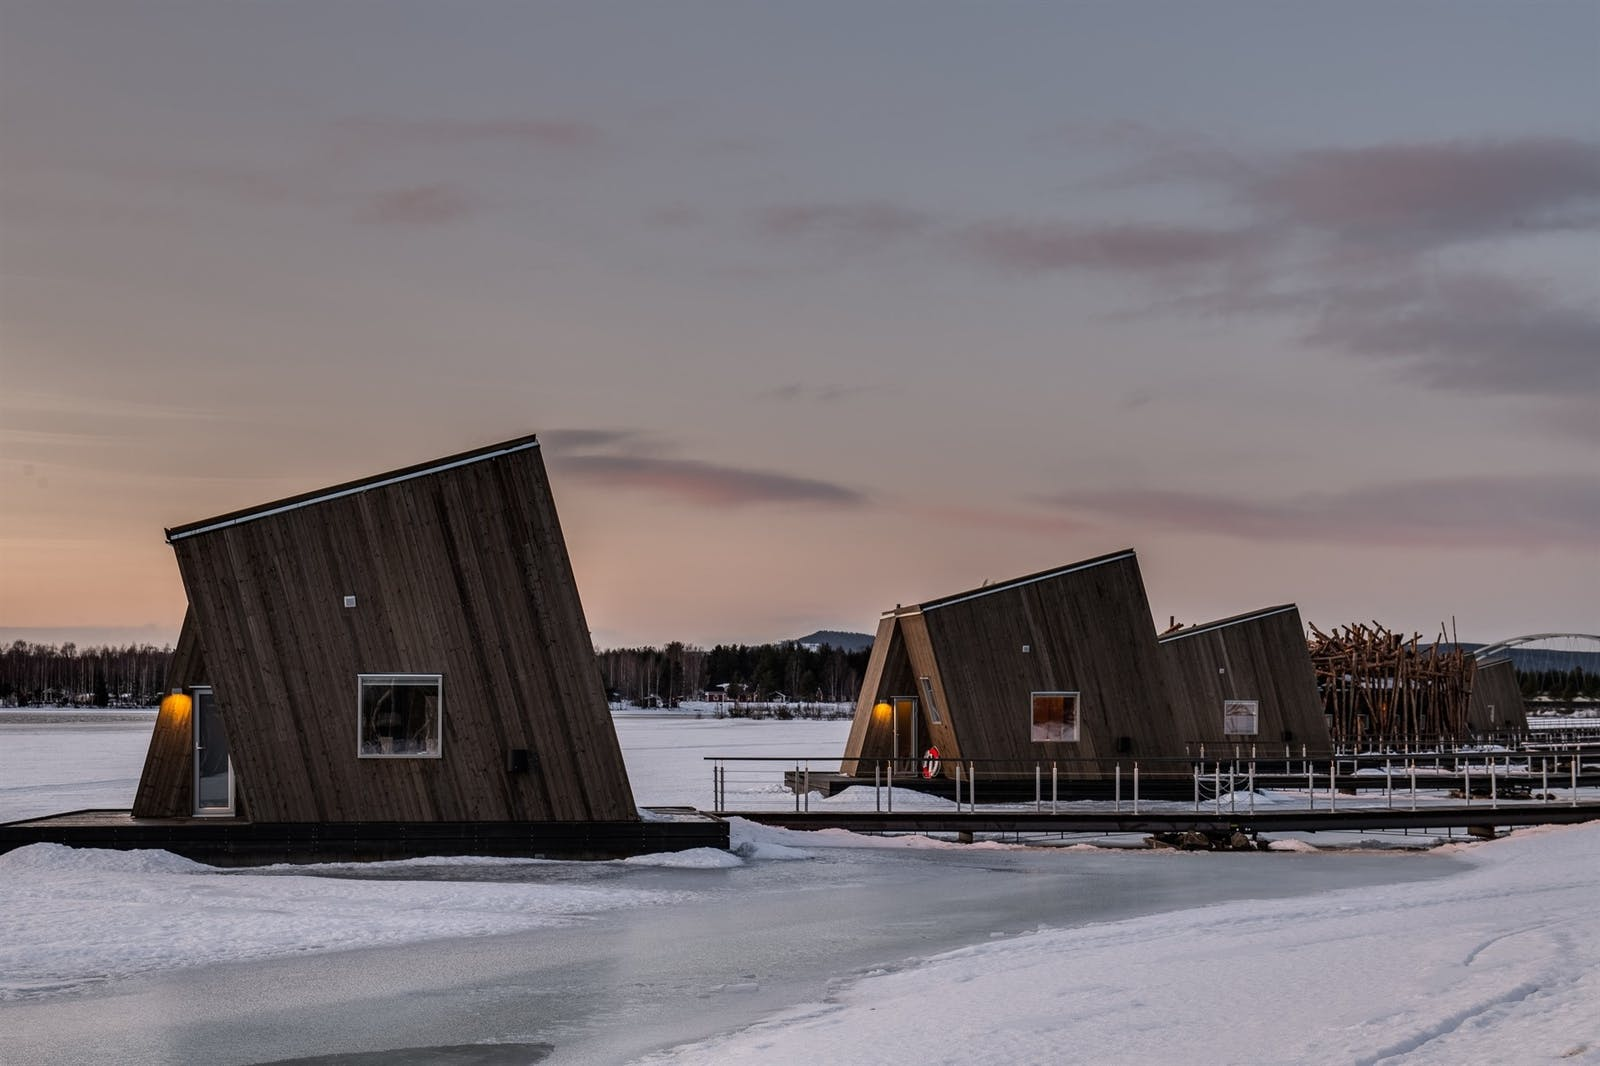 Floating Cabins connected to the shore by a floating walkway, Arctic Bath, Sweden